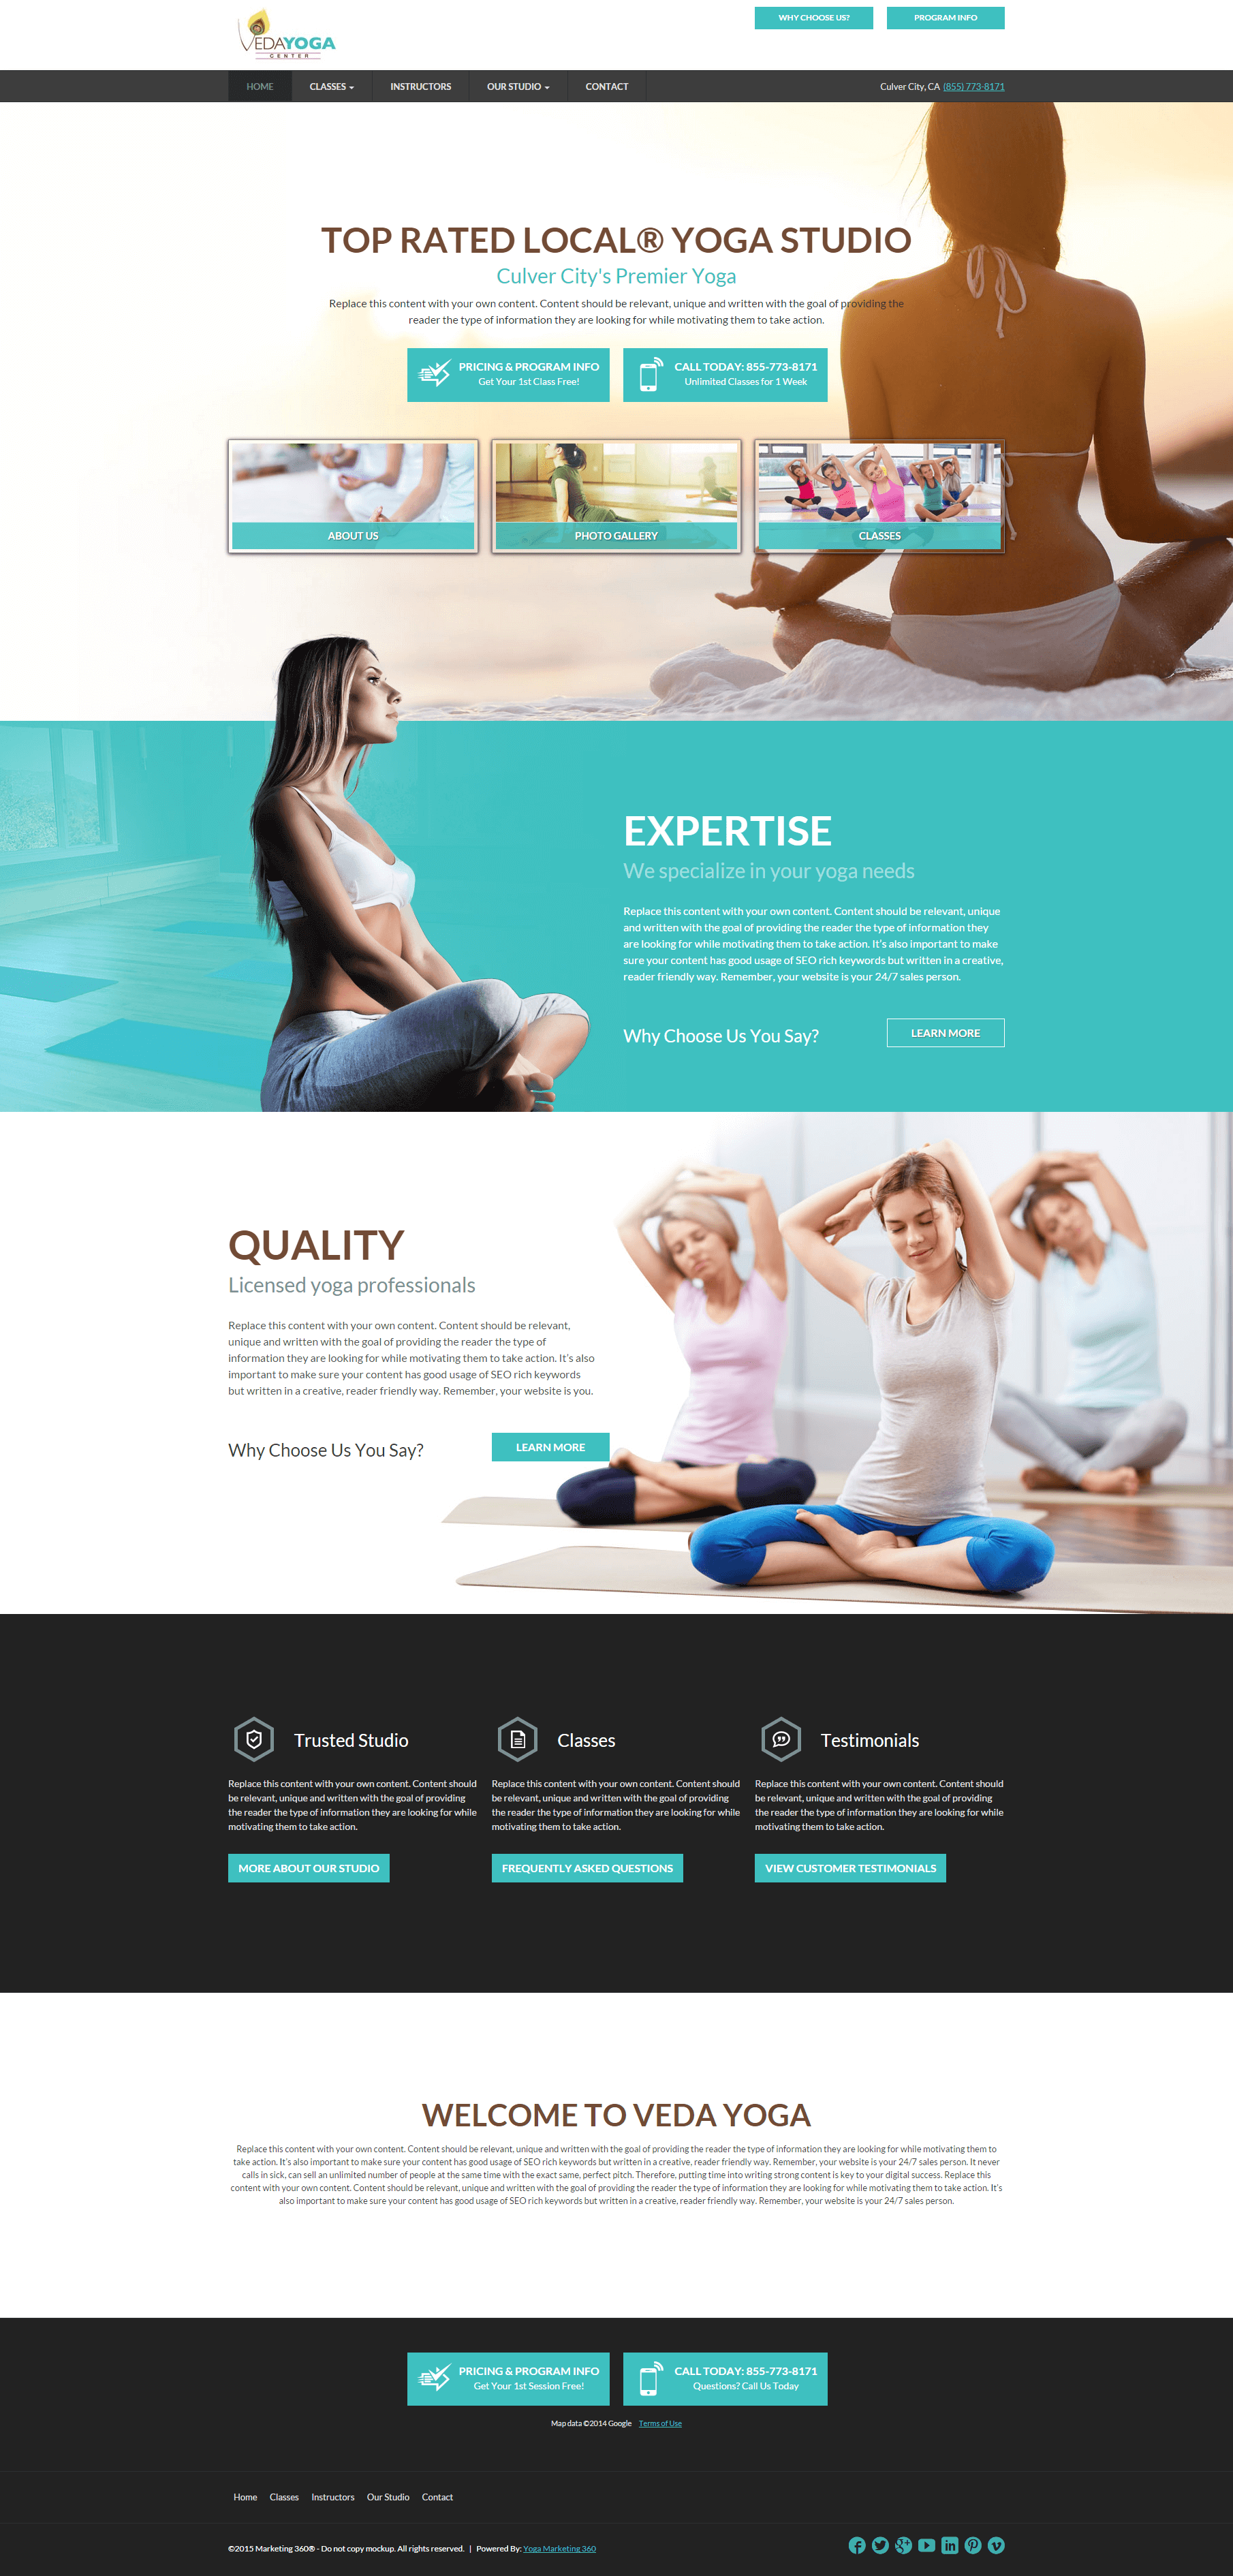 10 Best Yoga Studio Website Design Templates for 2019 ...